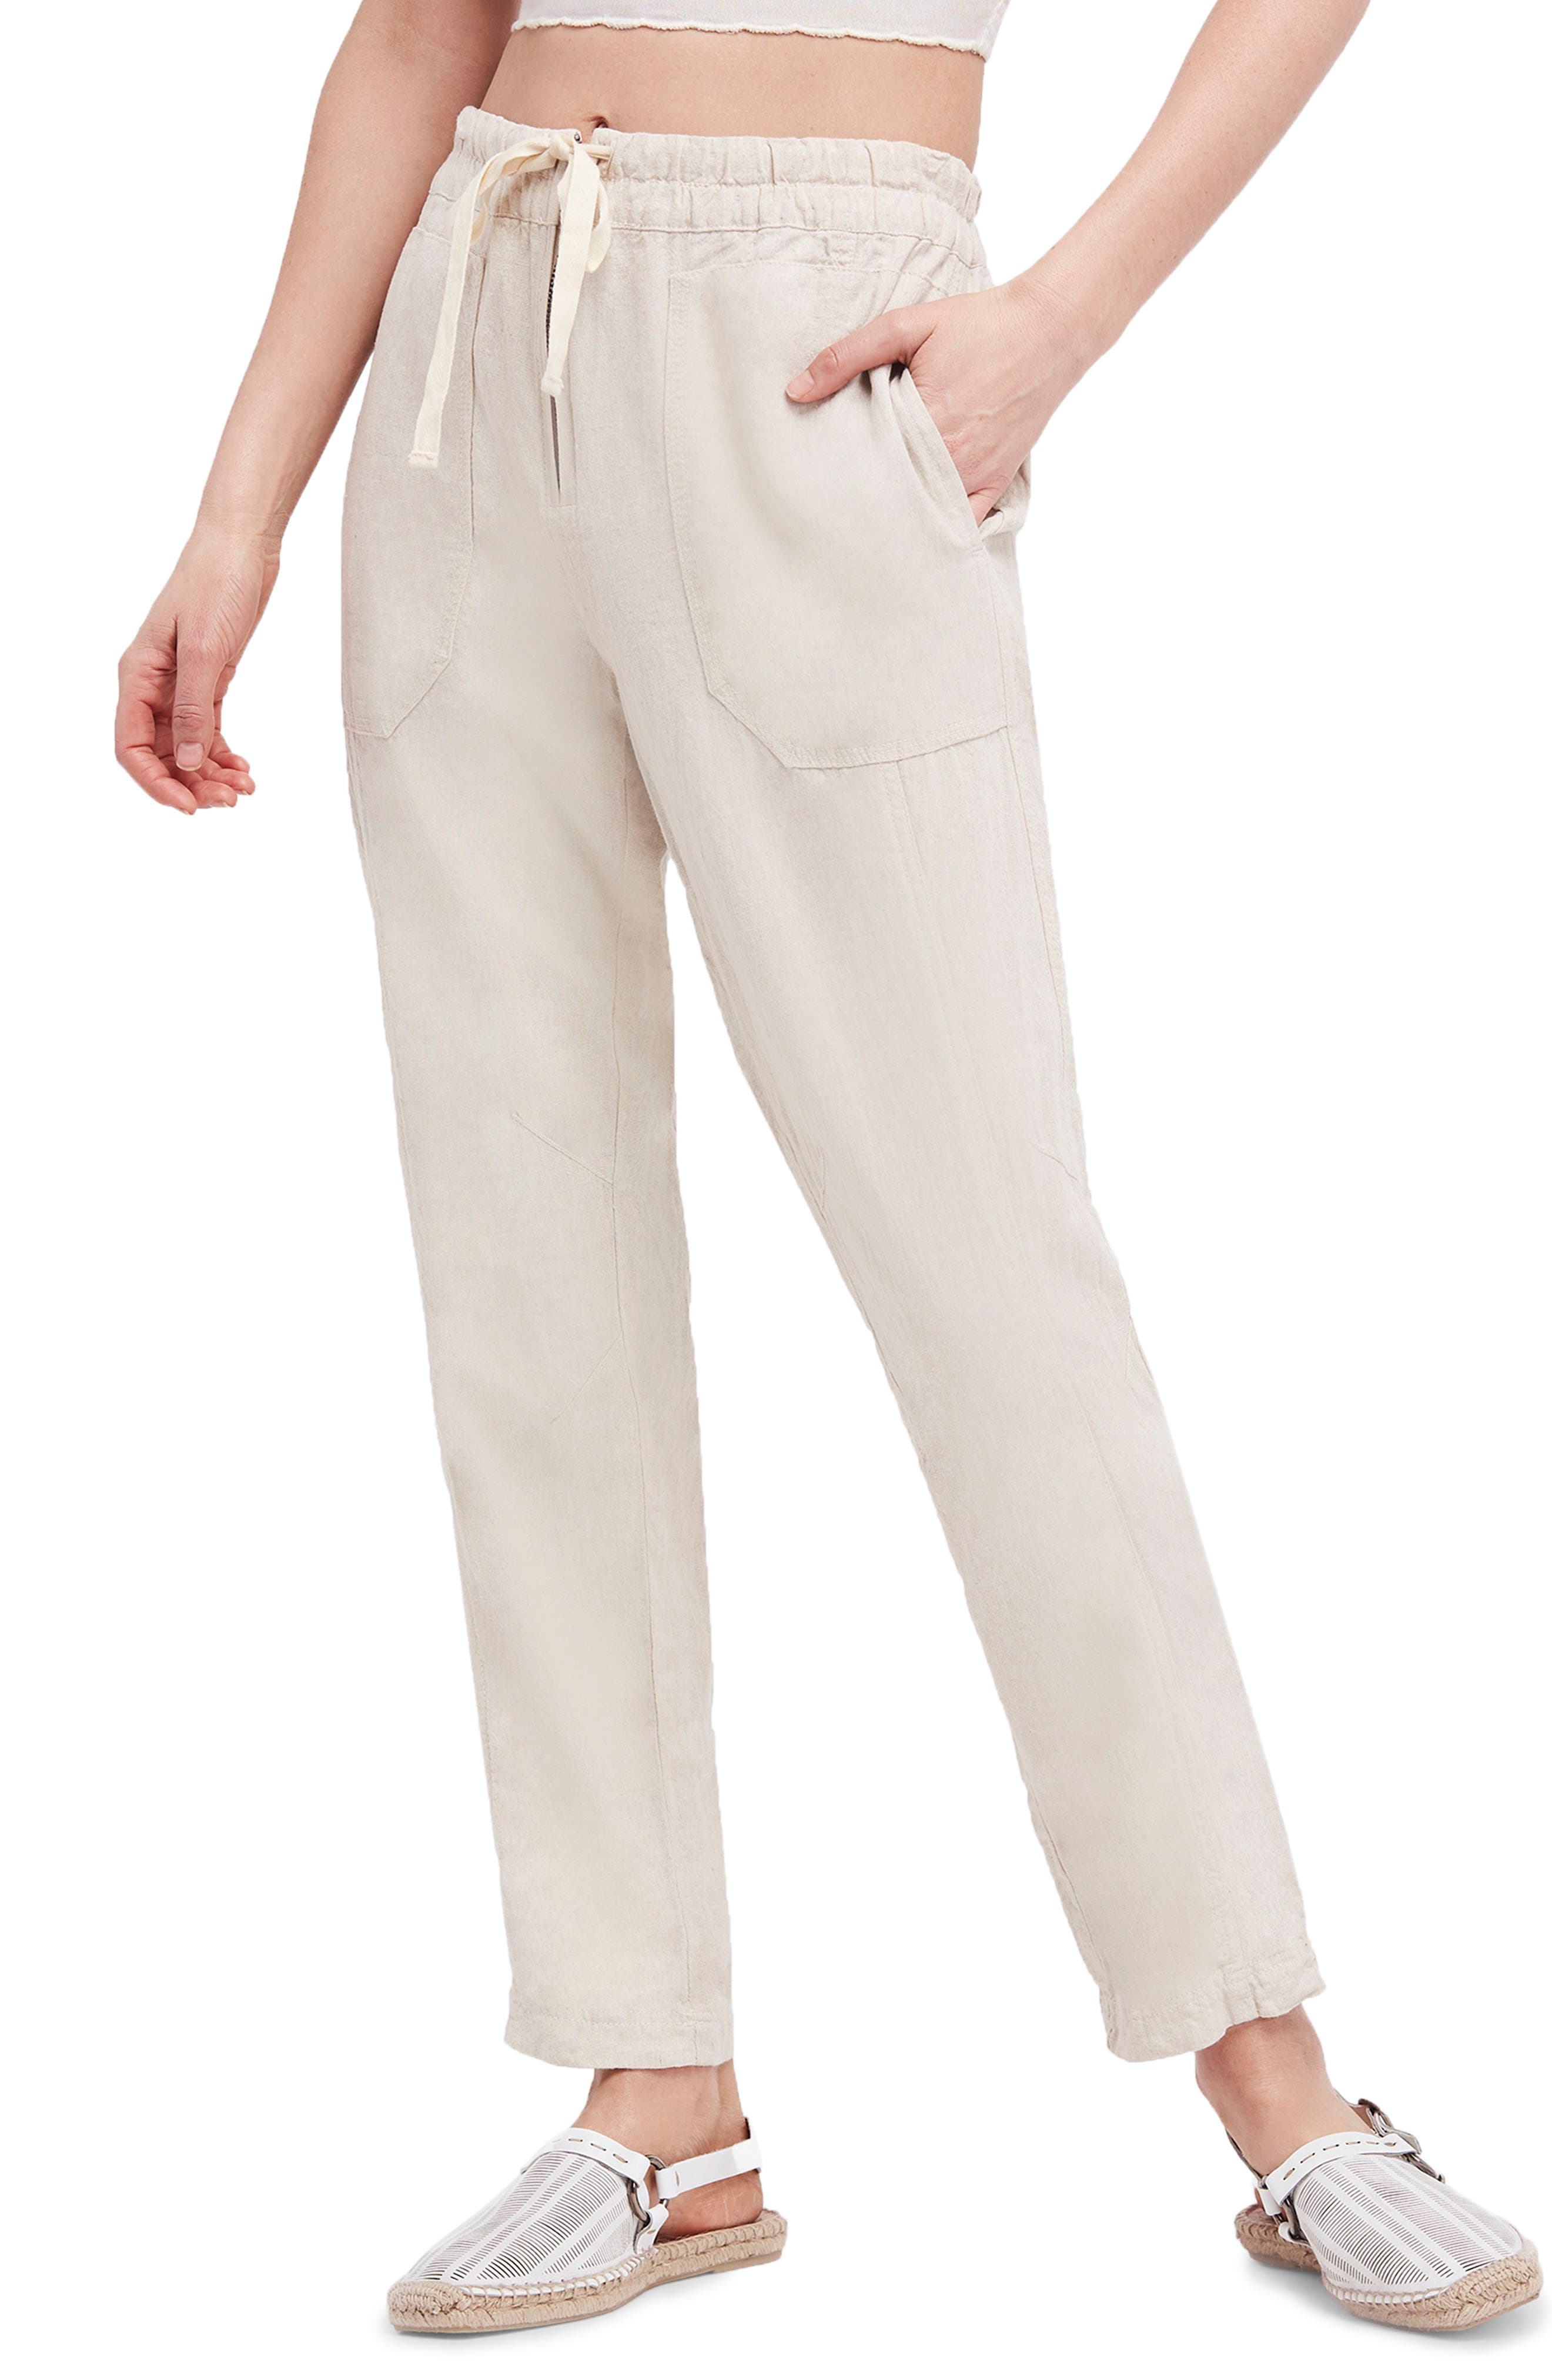 Palmer Skinny Utility Pants,                             Main thumbnail 1, color,                             Ivory